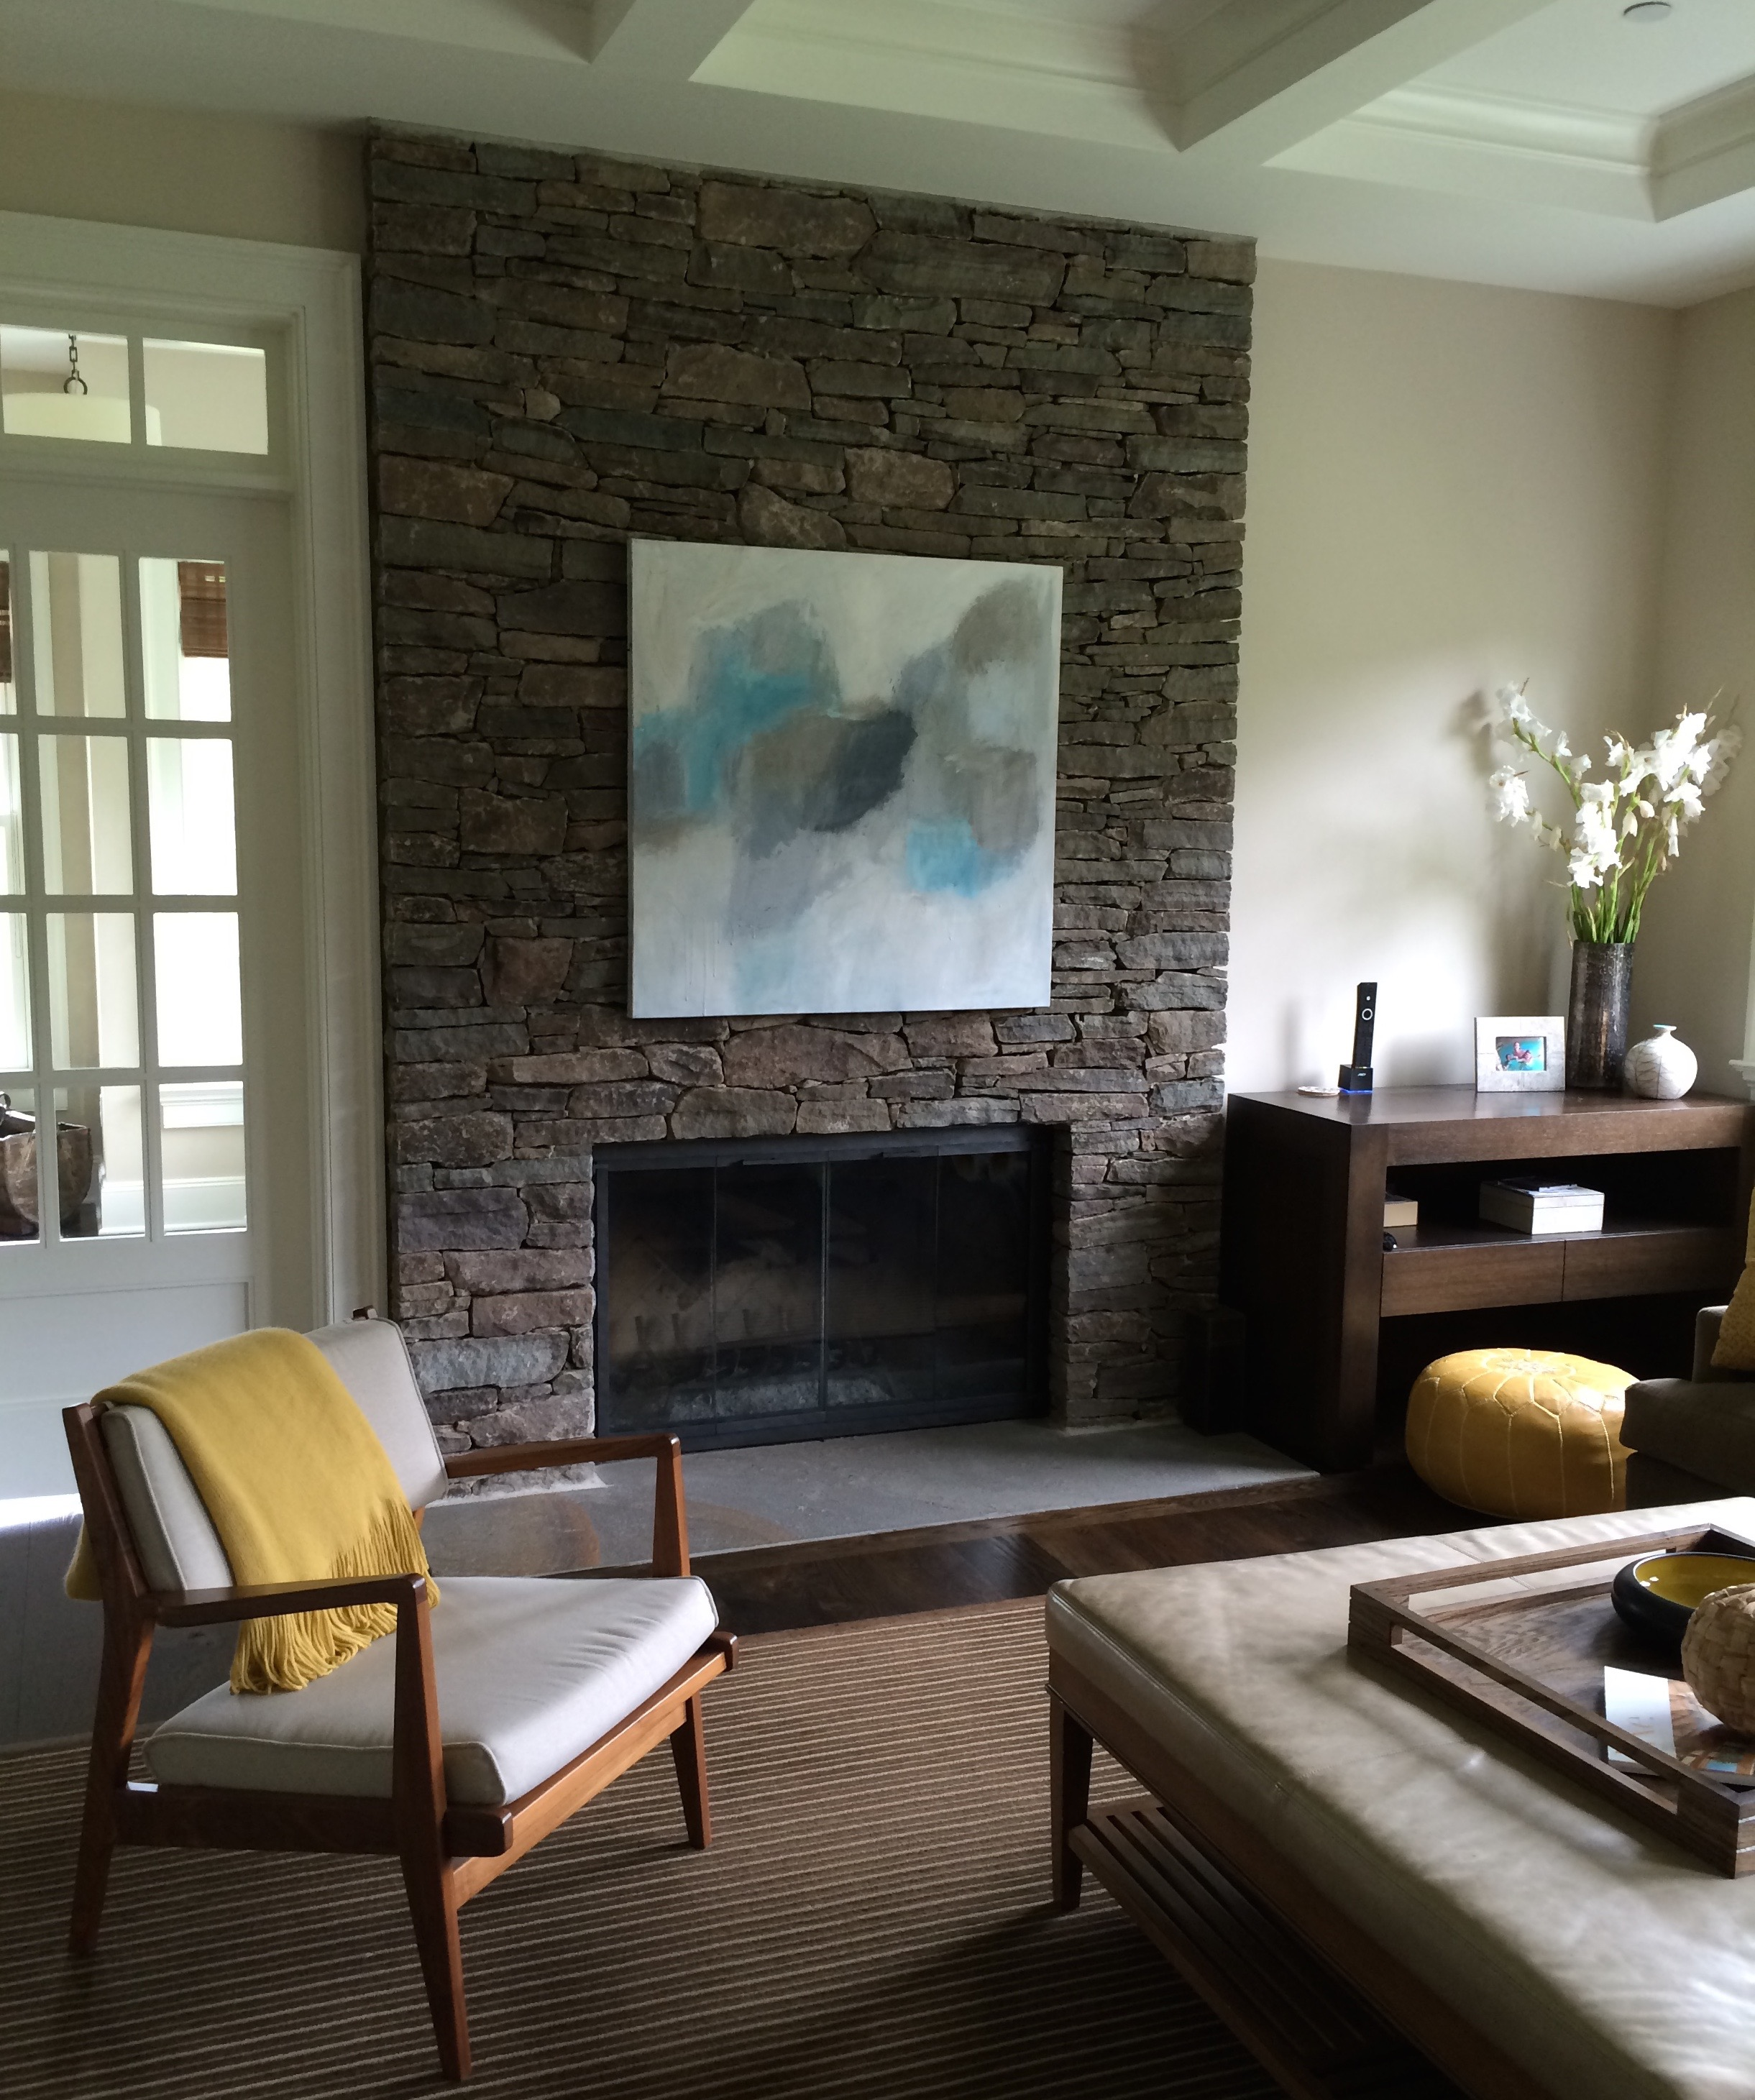 Chappaqua, NY, Maggie Nielsen Interiors - Commissioned Artwork by Kerri Rosenthal